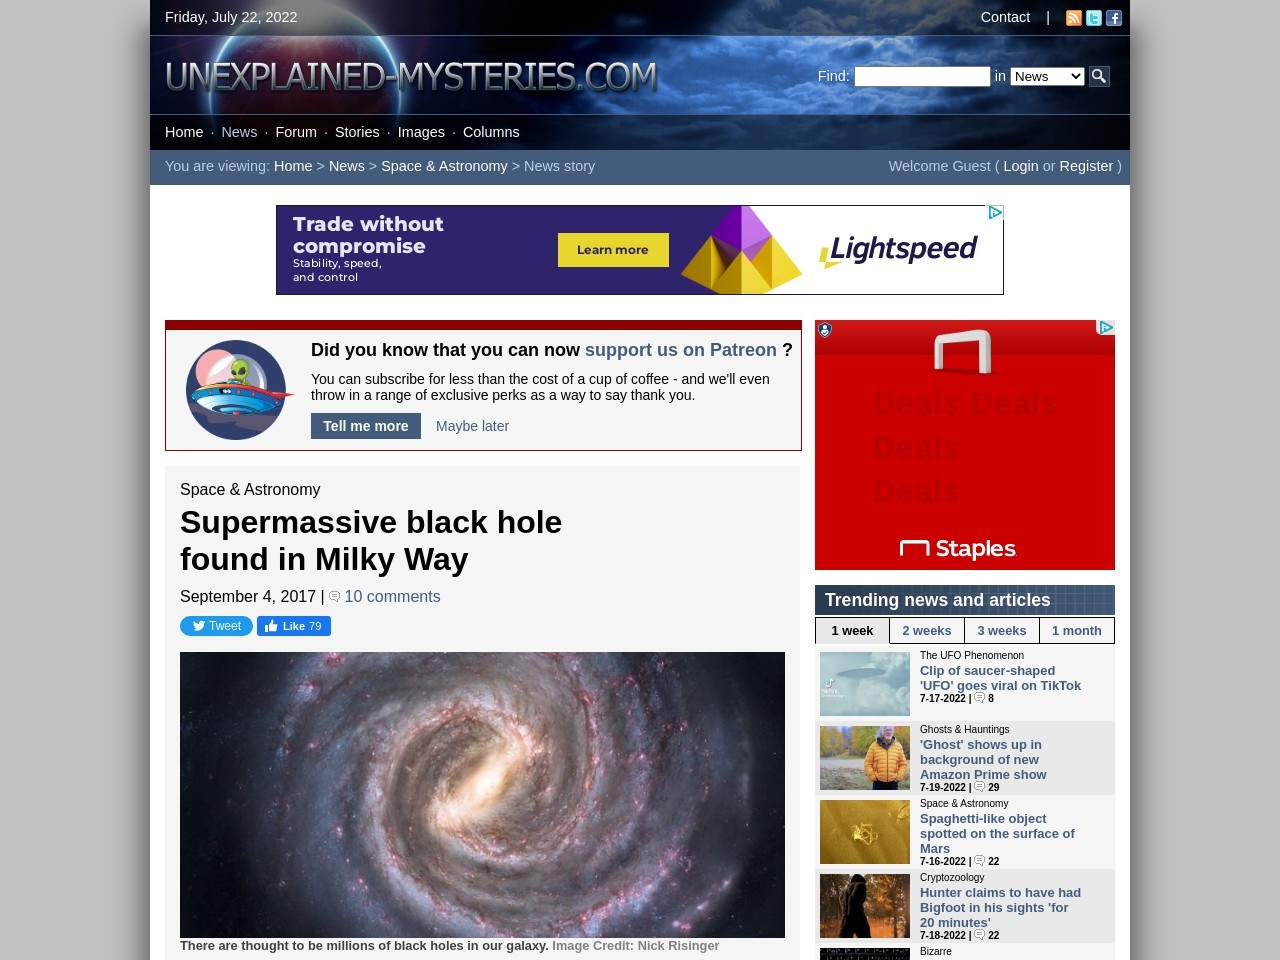 Supermassive black hole found in Milky Way